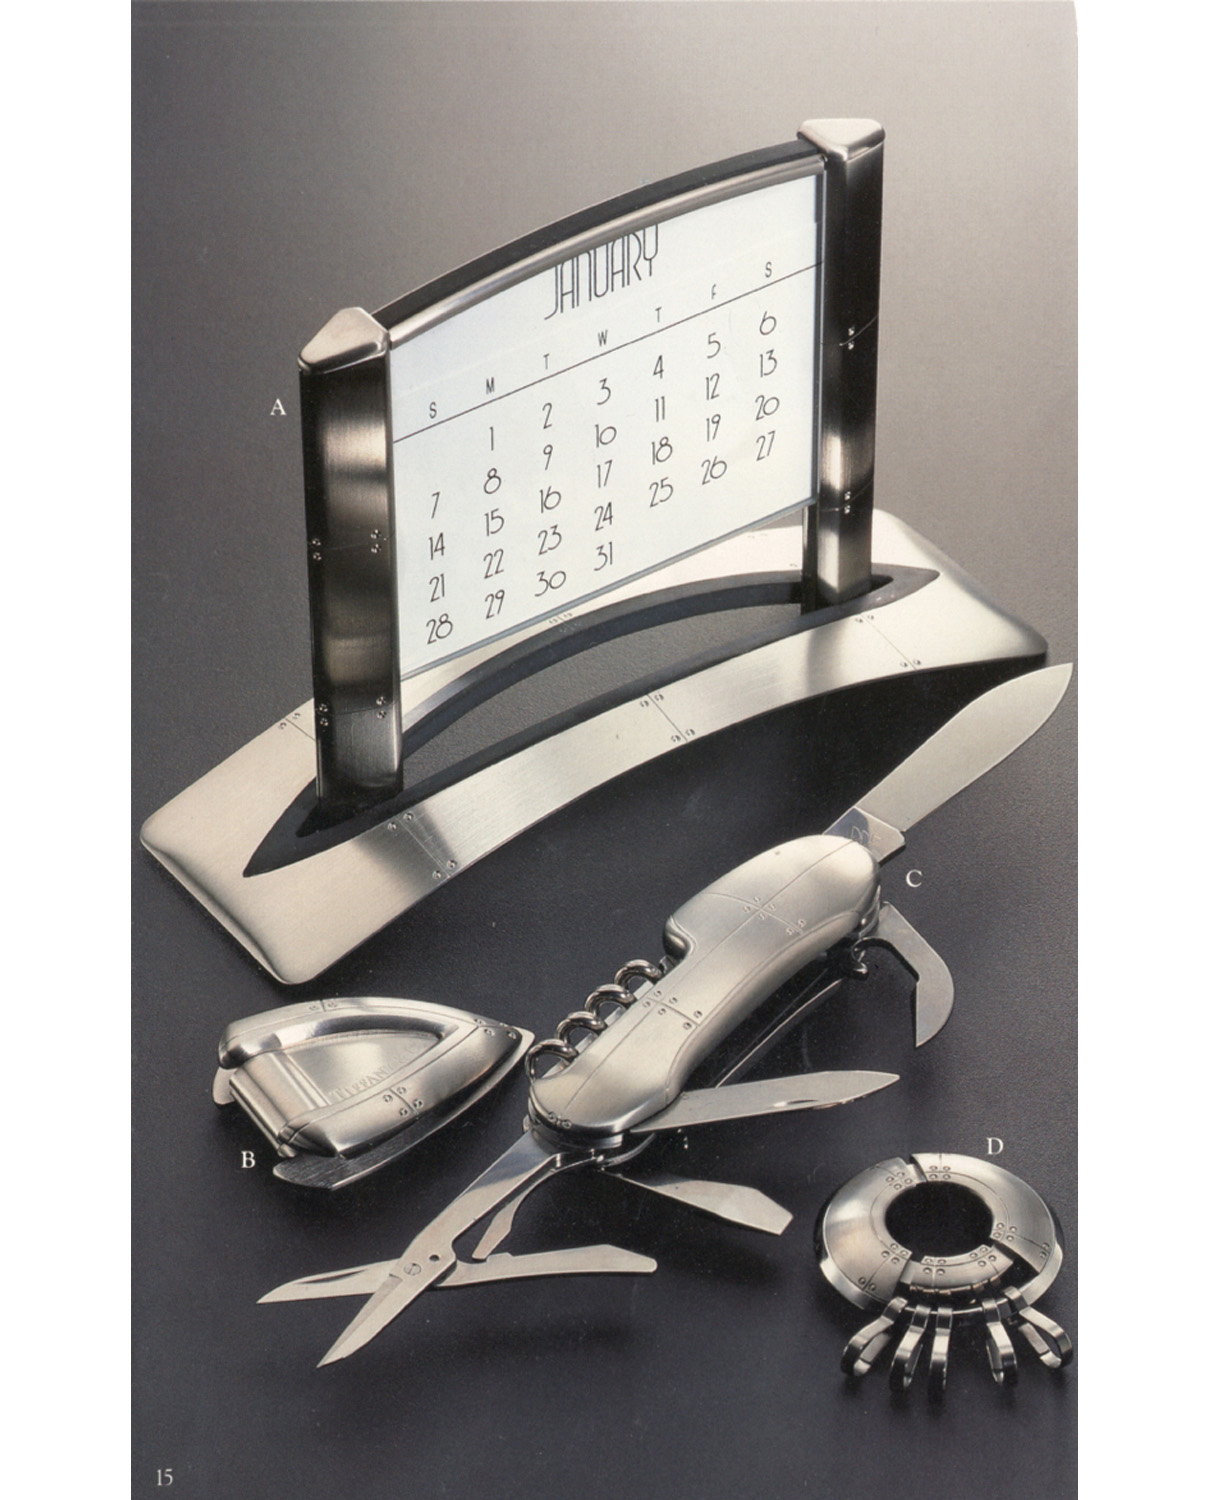 •	Tiffany & Co. Blue Book Catalog late 90's Streamerica Stainless Steel Collection: Airframe Perpetual Calendar, Laminar Money Clip, Carapace Pocket Knife, and Porthole Keyring.